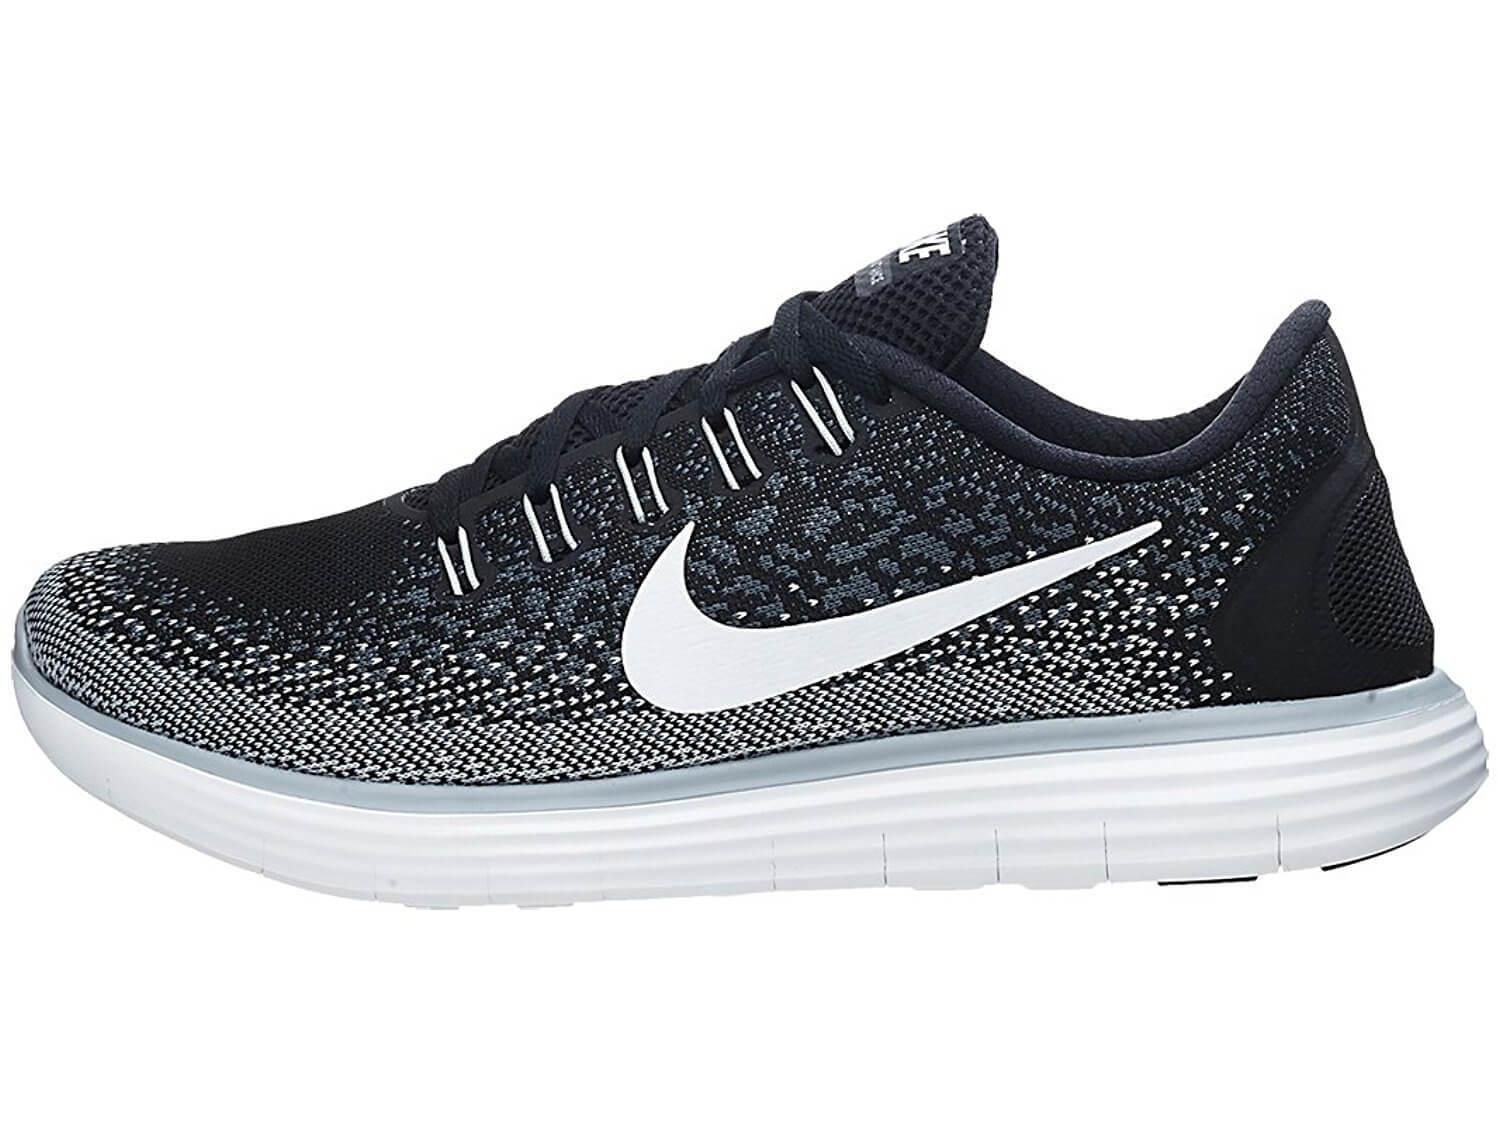 05f7396fbfe Nike Free RN Distance Review - Buy or Not in May 2019